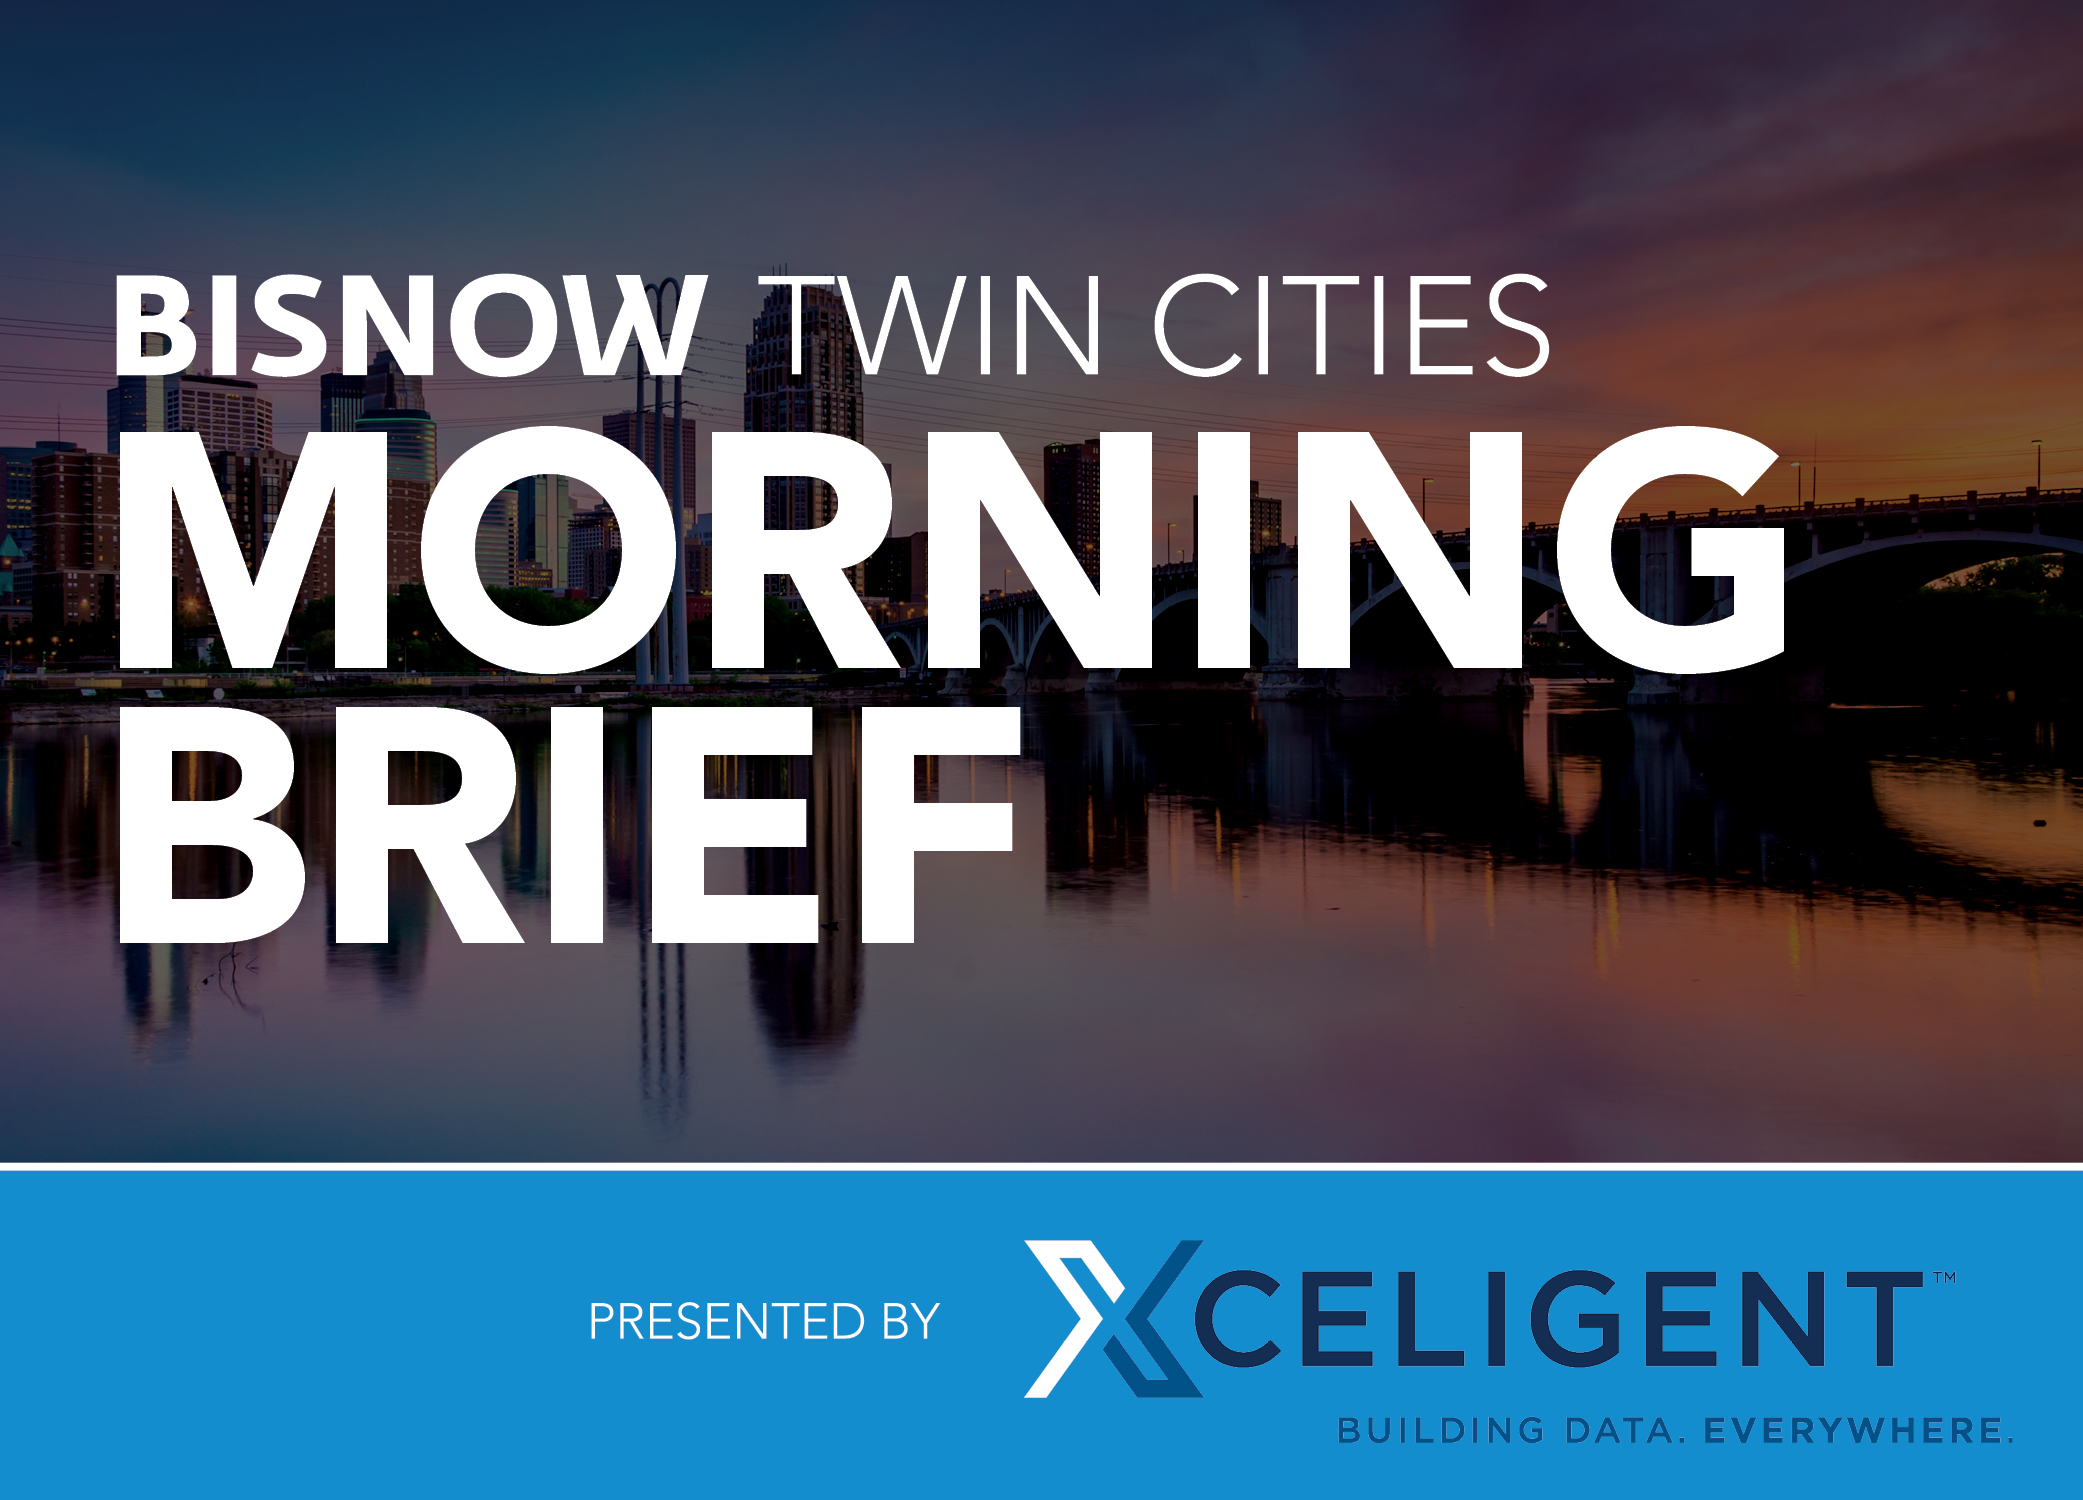 Bisnow Morning Brief Twin Cities